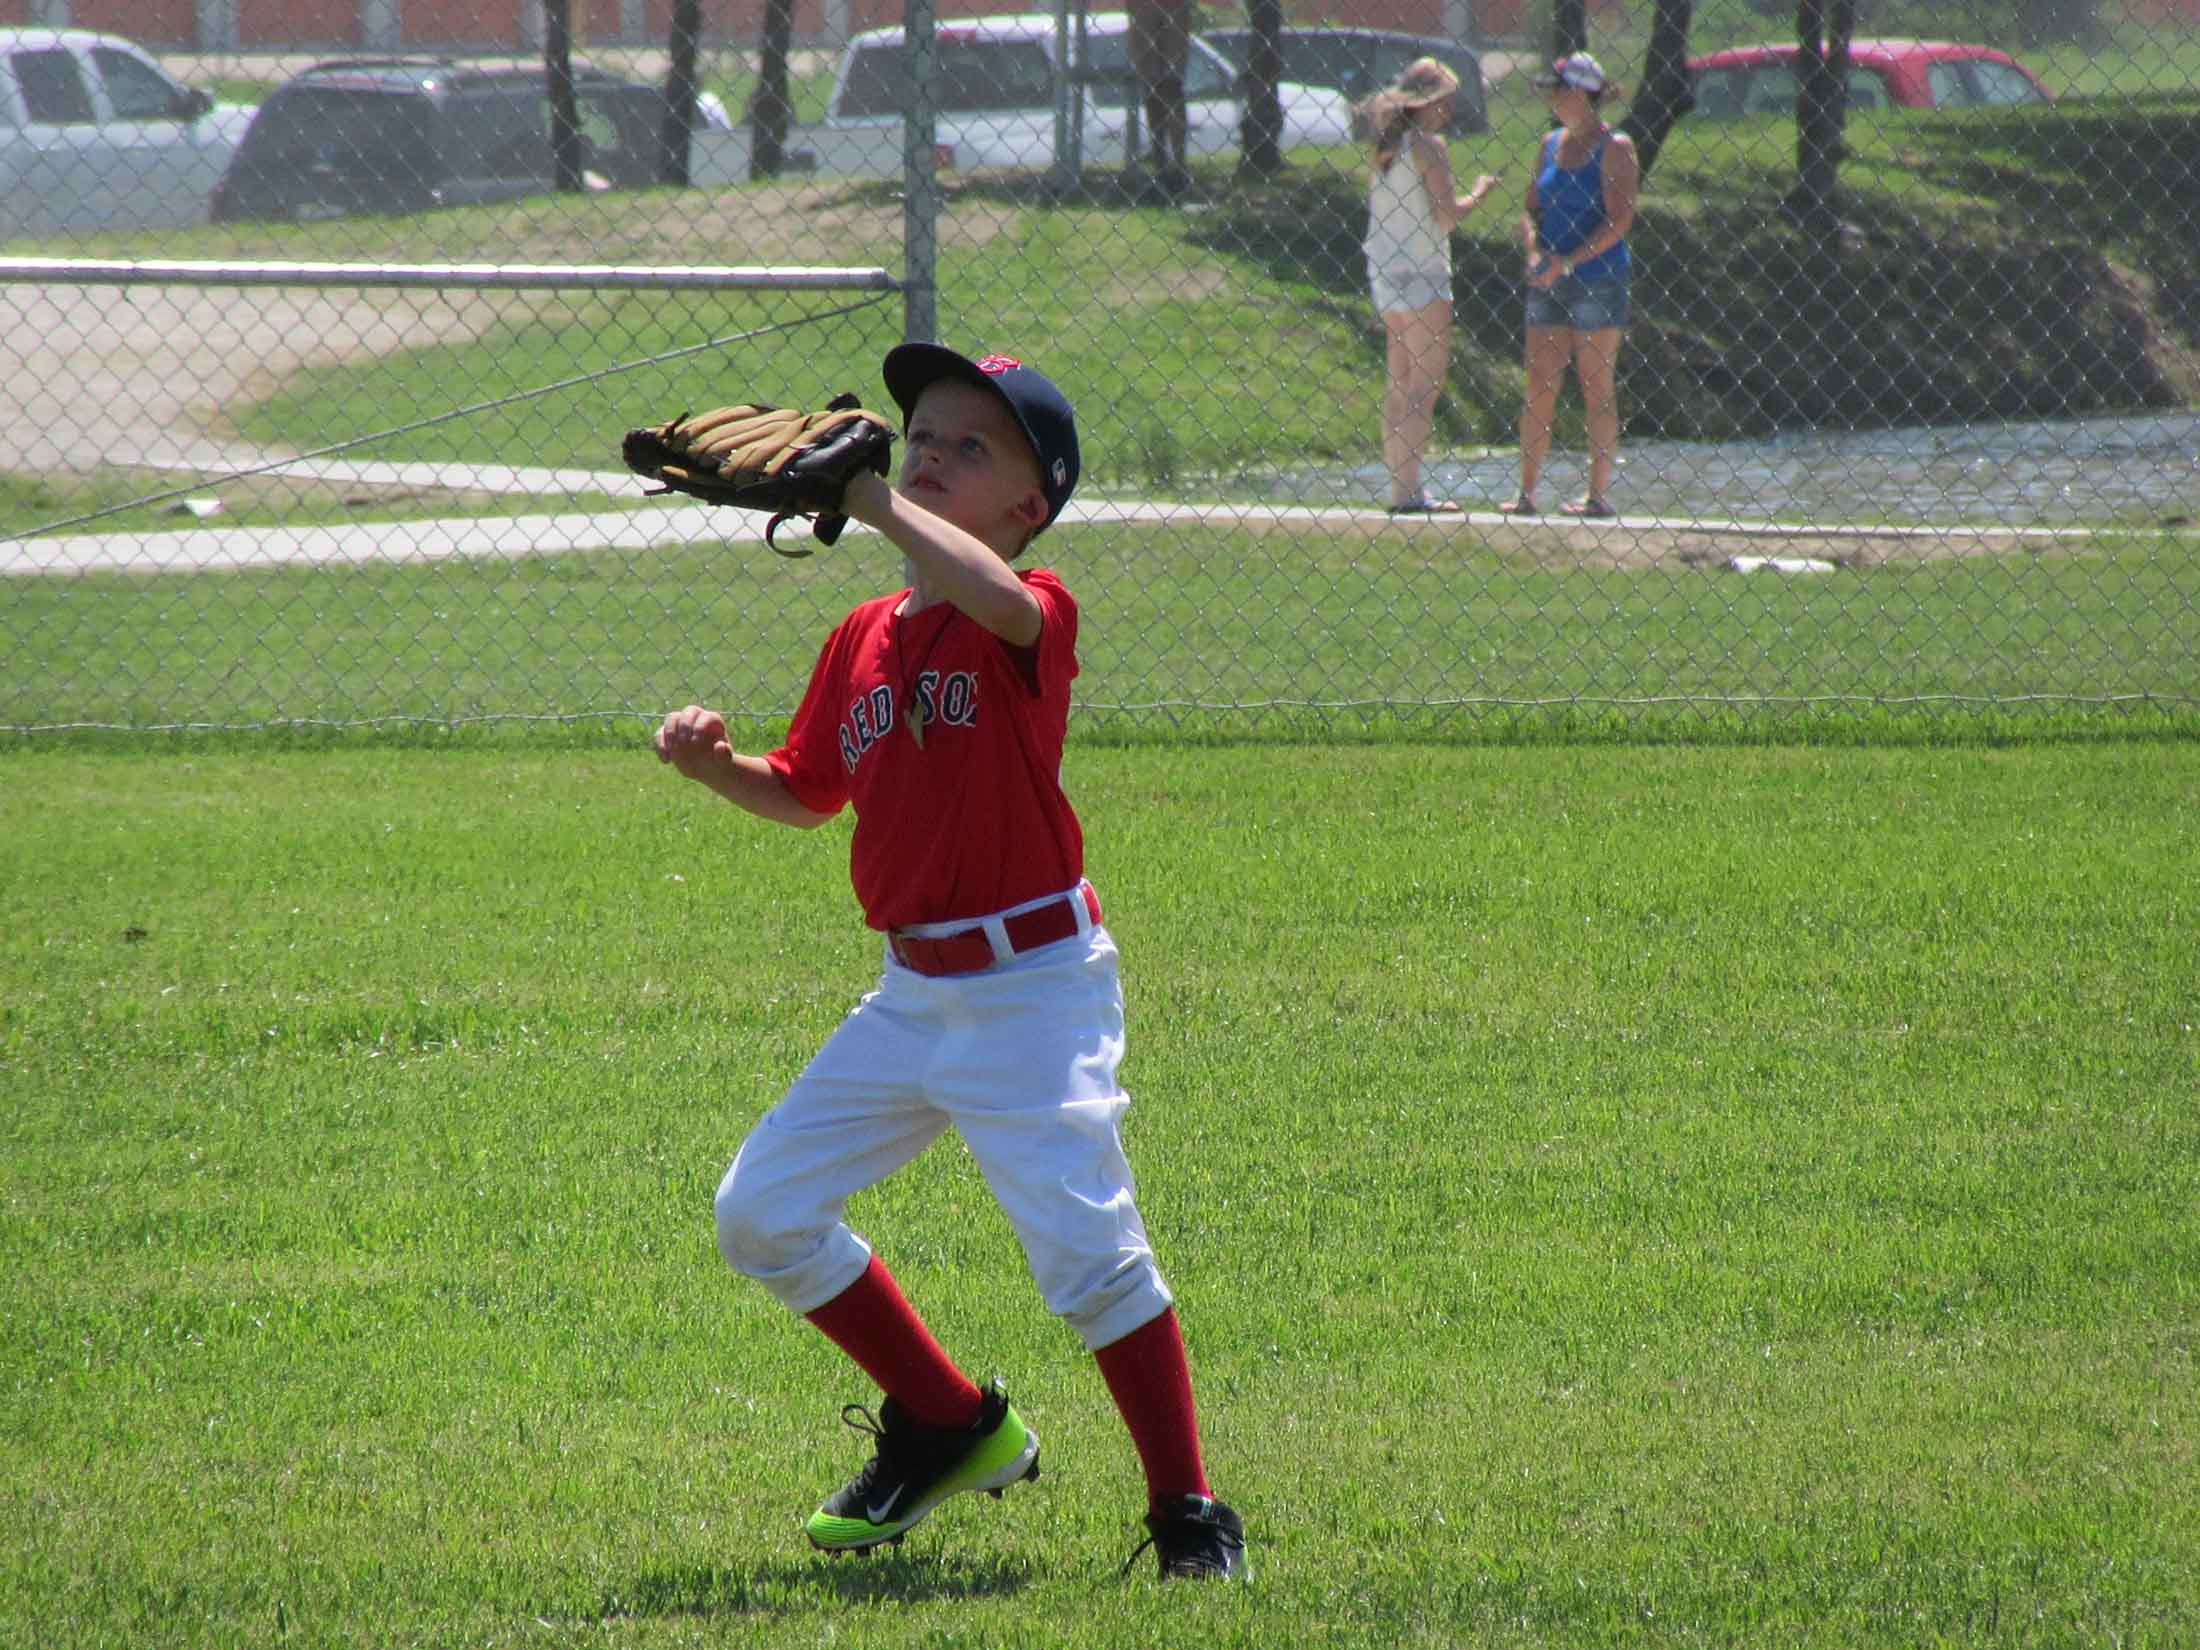 Boy in red shirt catching a ball